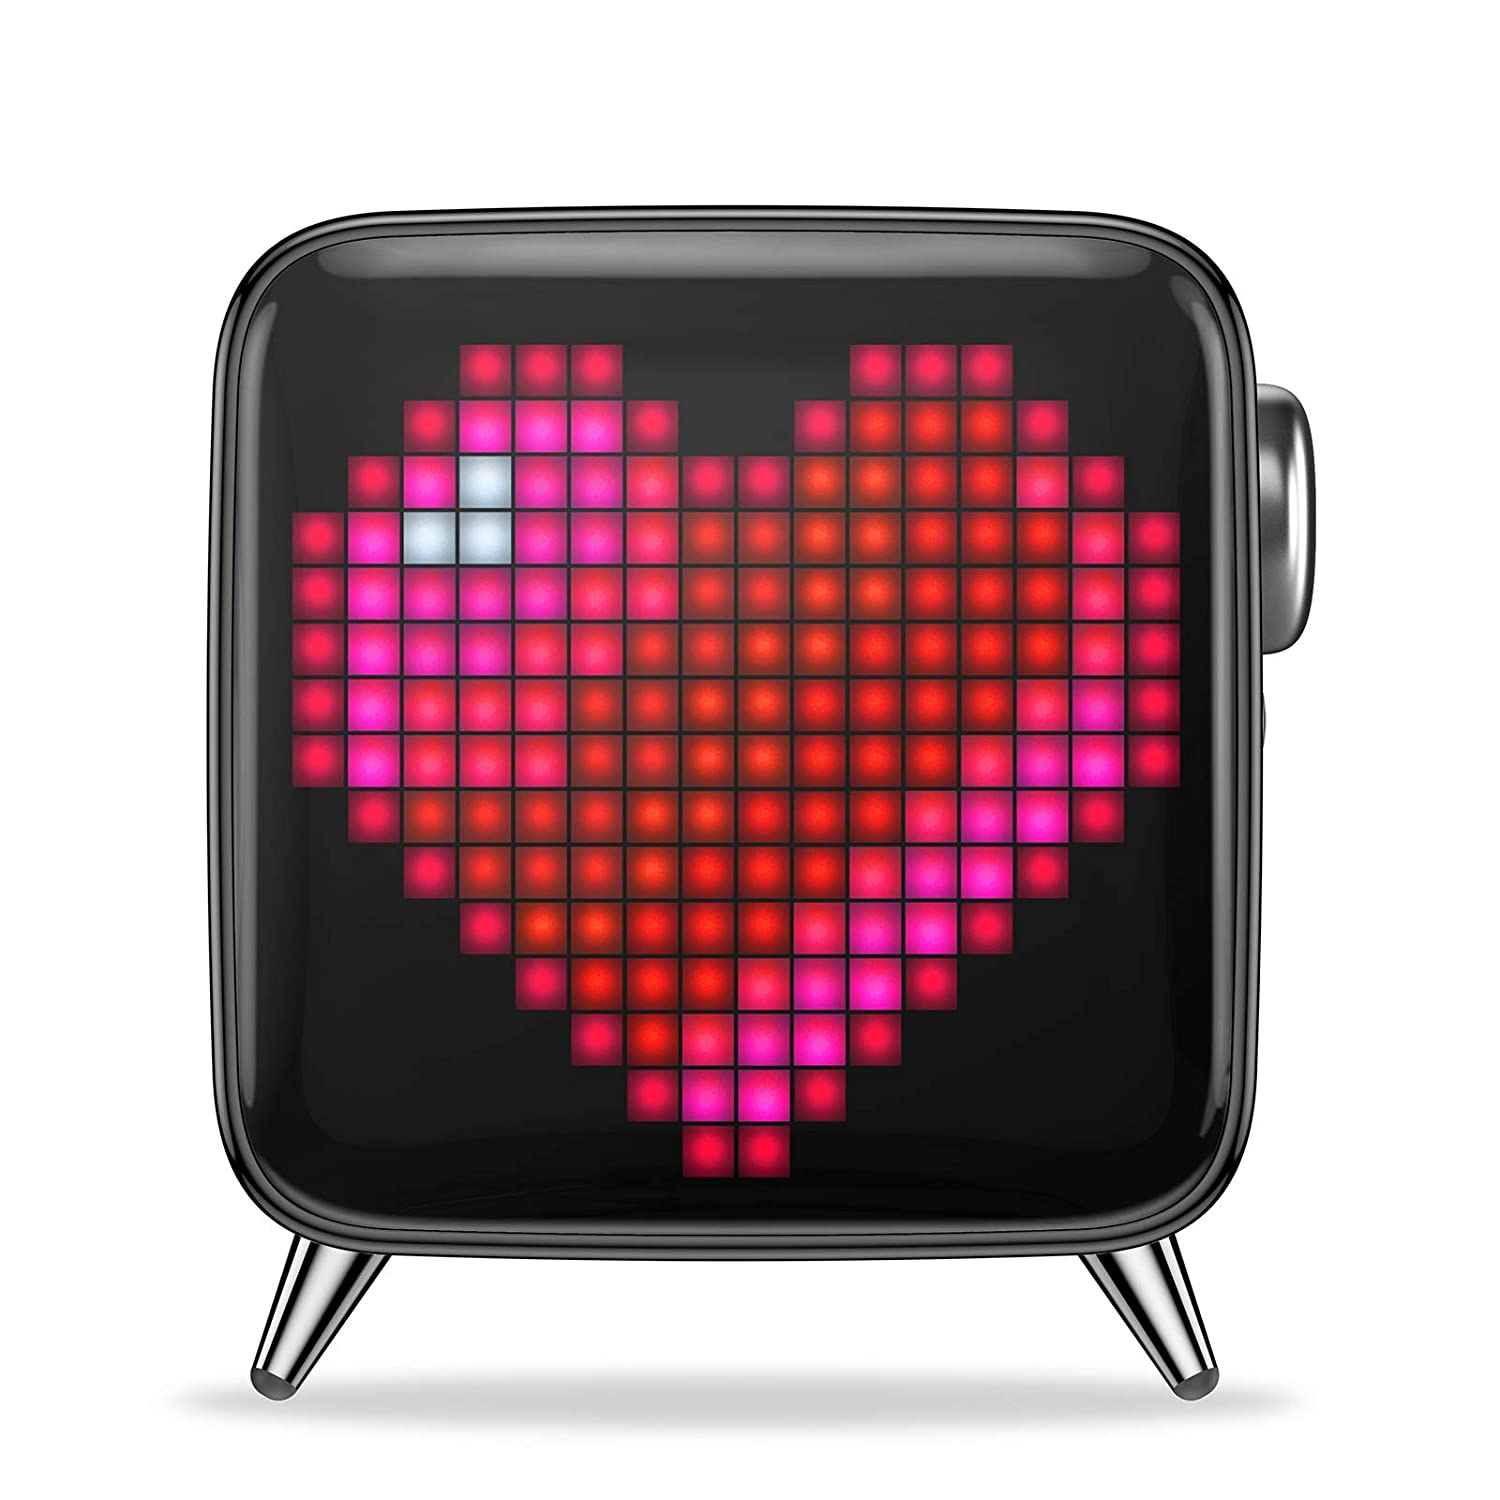 Divoom Tivoo Max Smart Portable Bluetooth LED Speaker with APP-Controlled Pixel Art Animation, Notification and Build- in Clock/Alarm, 6.42 7.263.39 ...